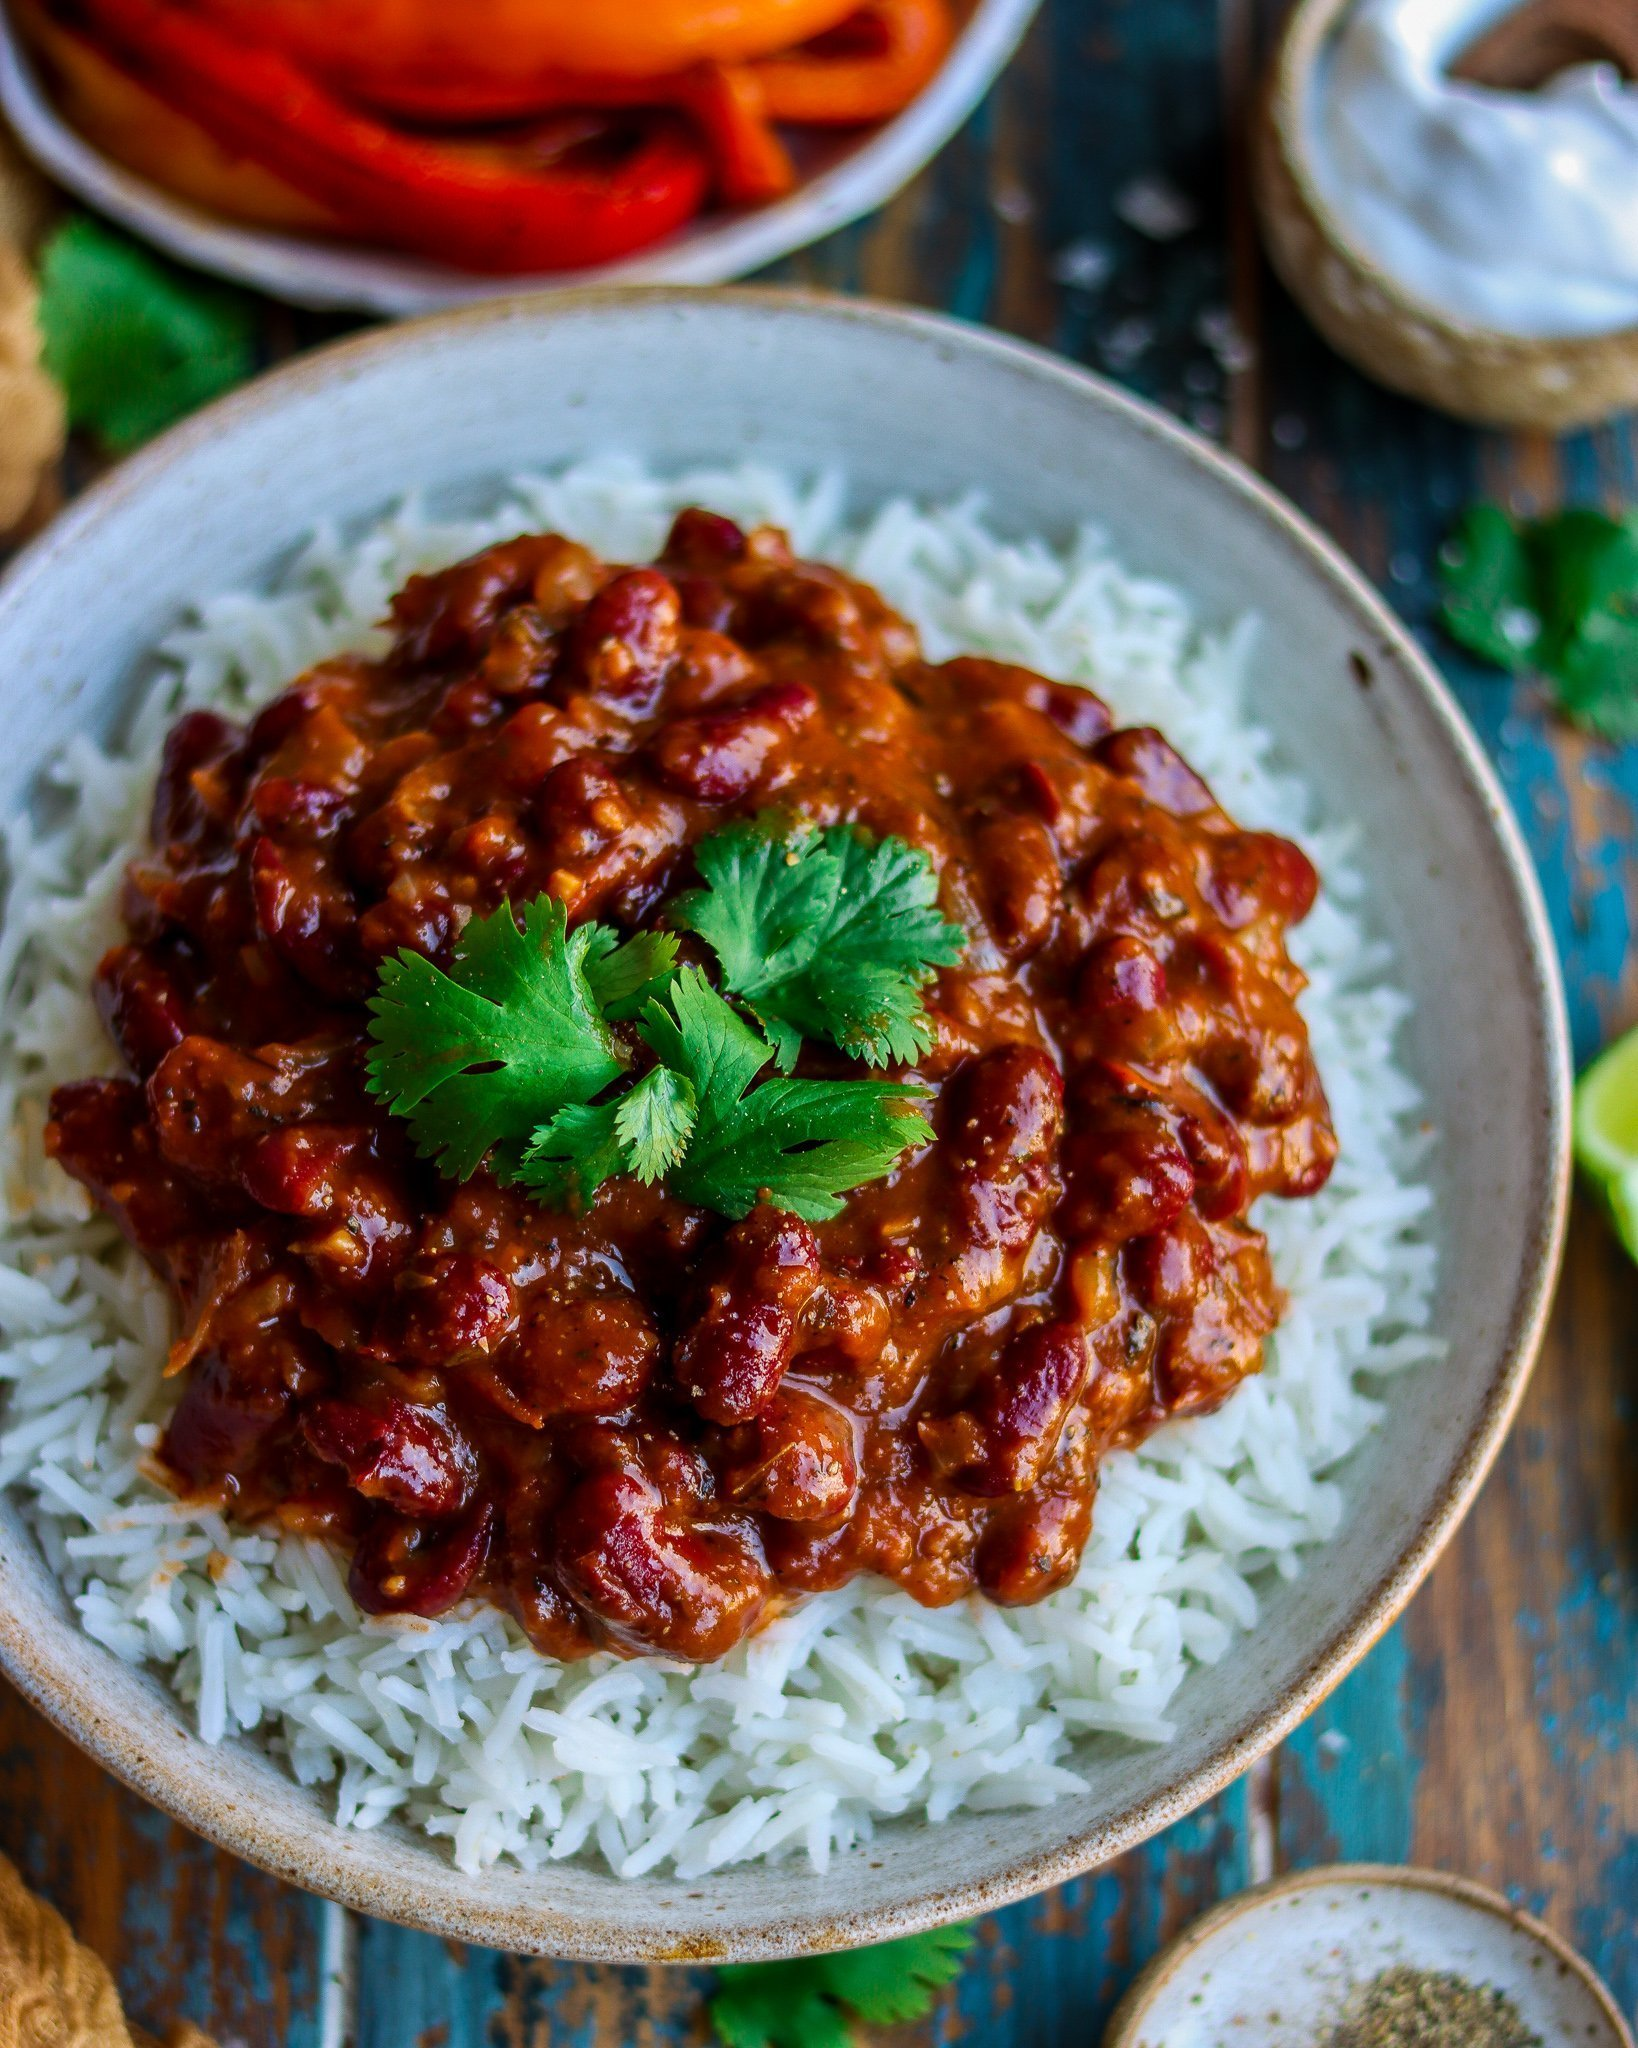 Smoky Caribbean Style Kidney Beans